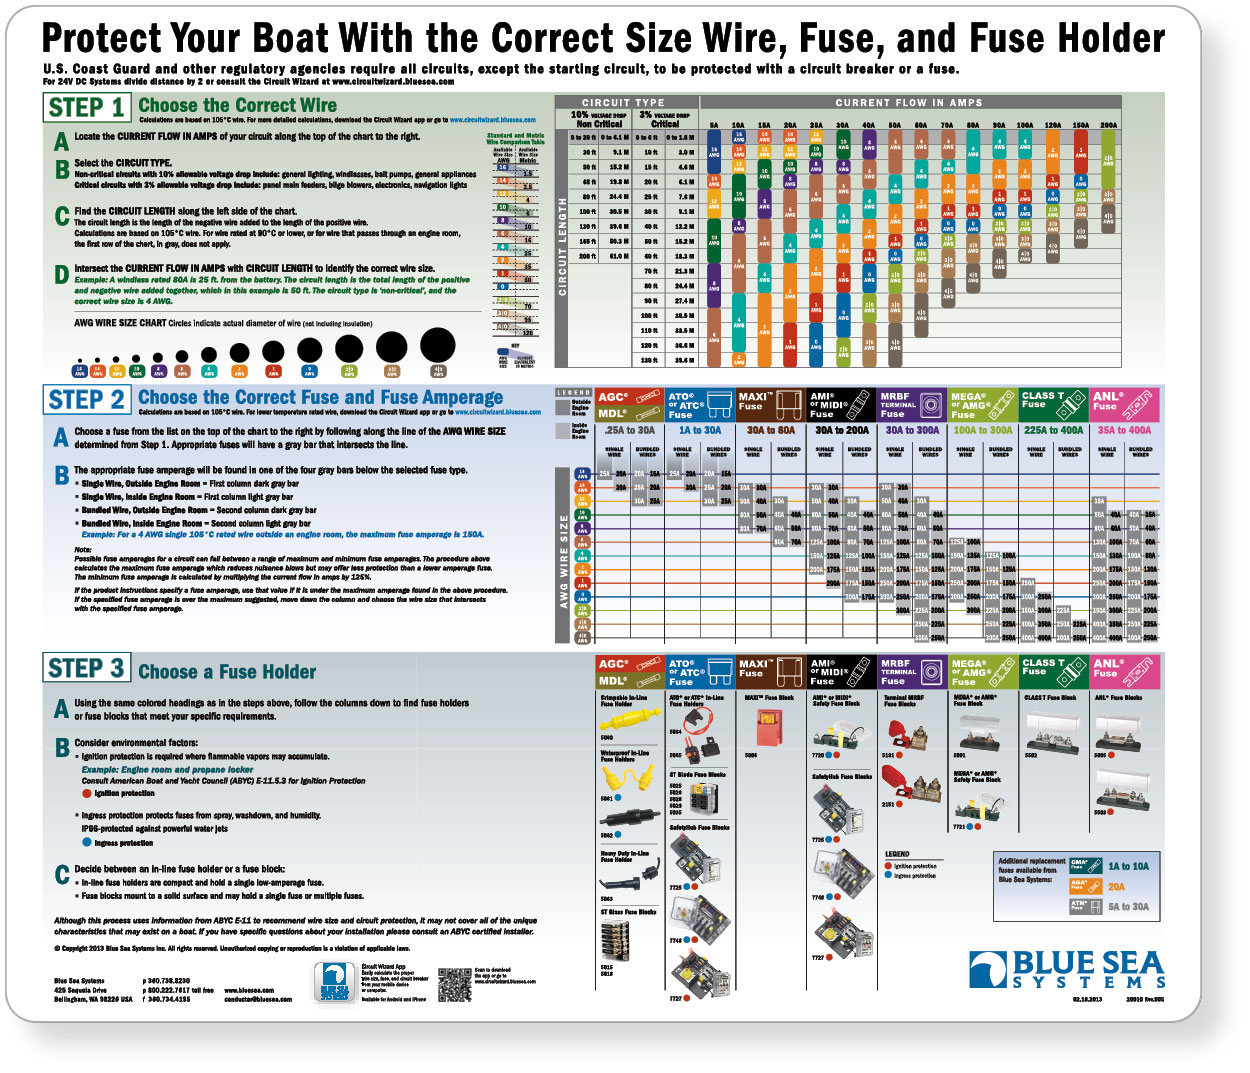 Wire fuse and fuse holder selection chart blue sea systems product image keyboard keysfo Choice Image